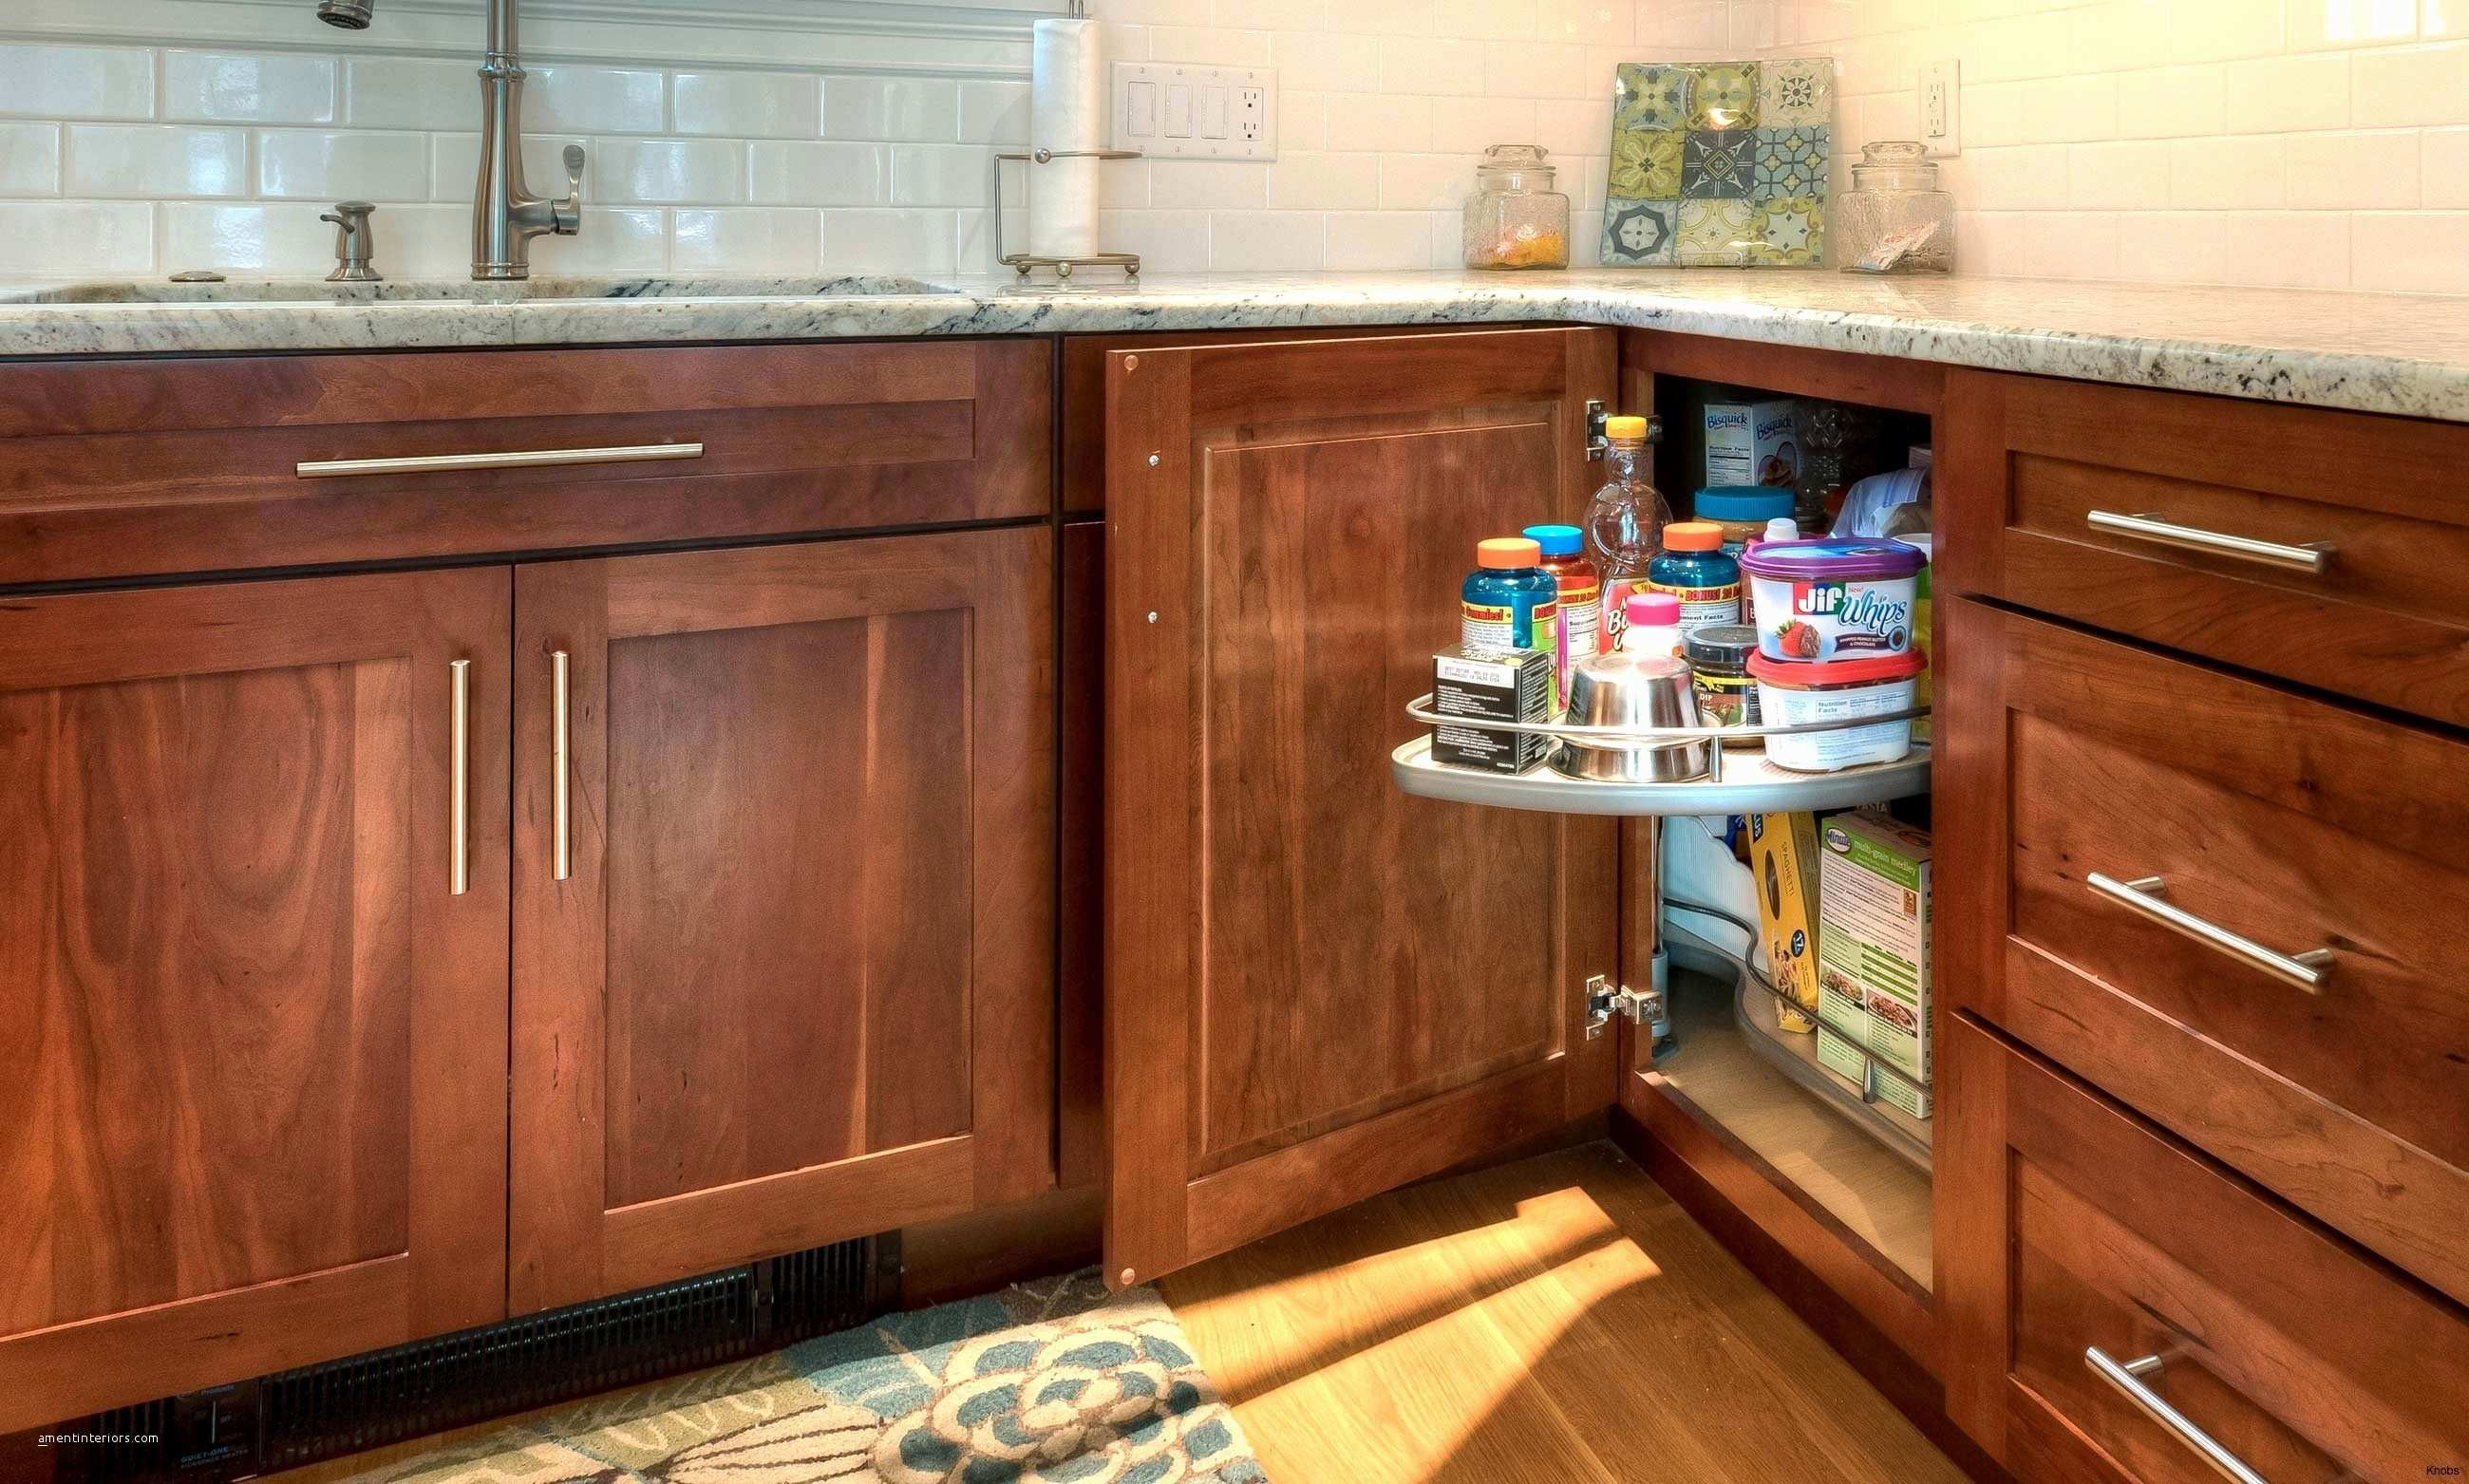 Best New Microwave Shelf Cabinet Kitchen Cabinets For Sale 400 x 300